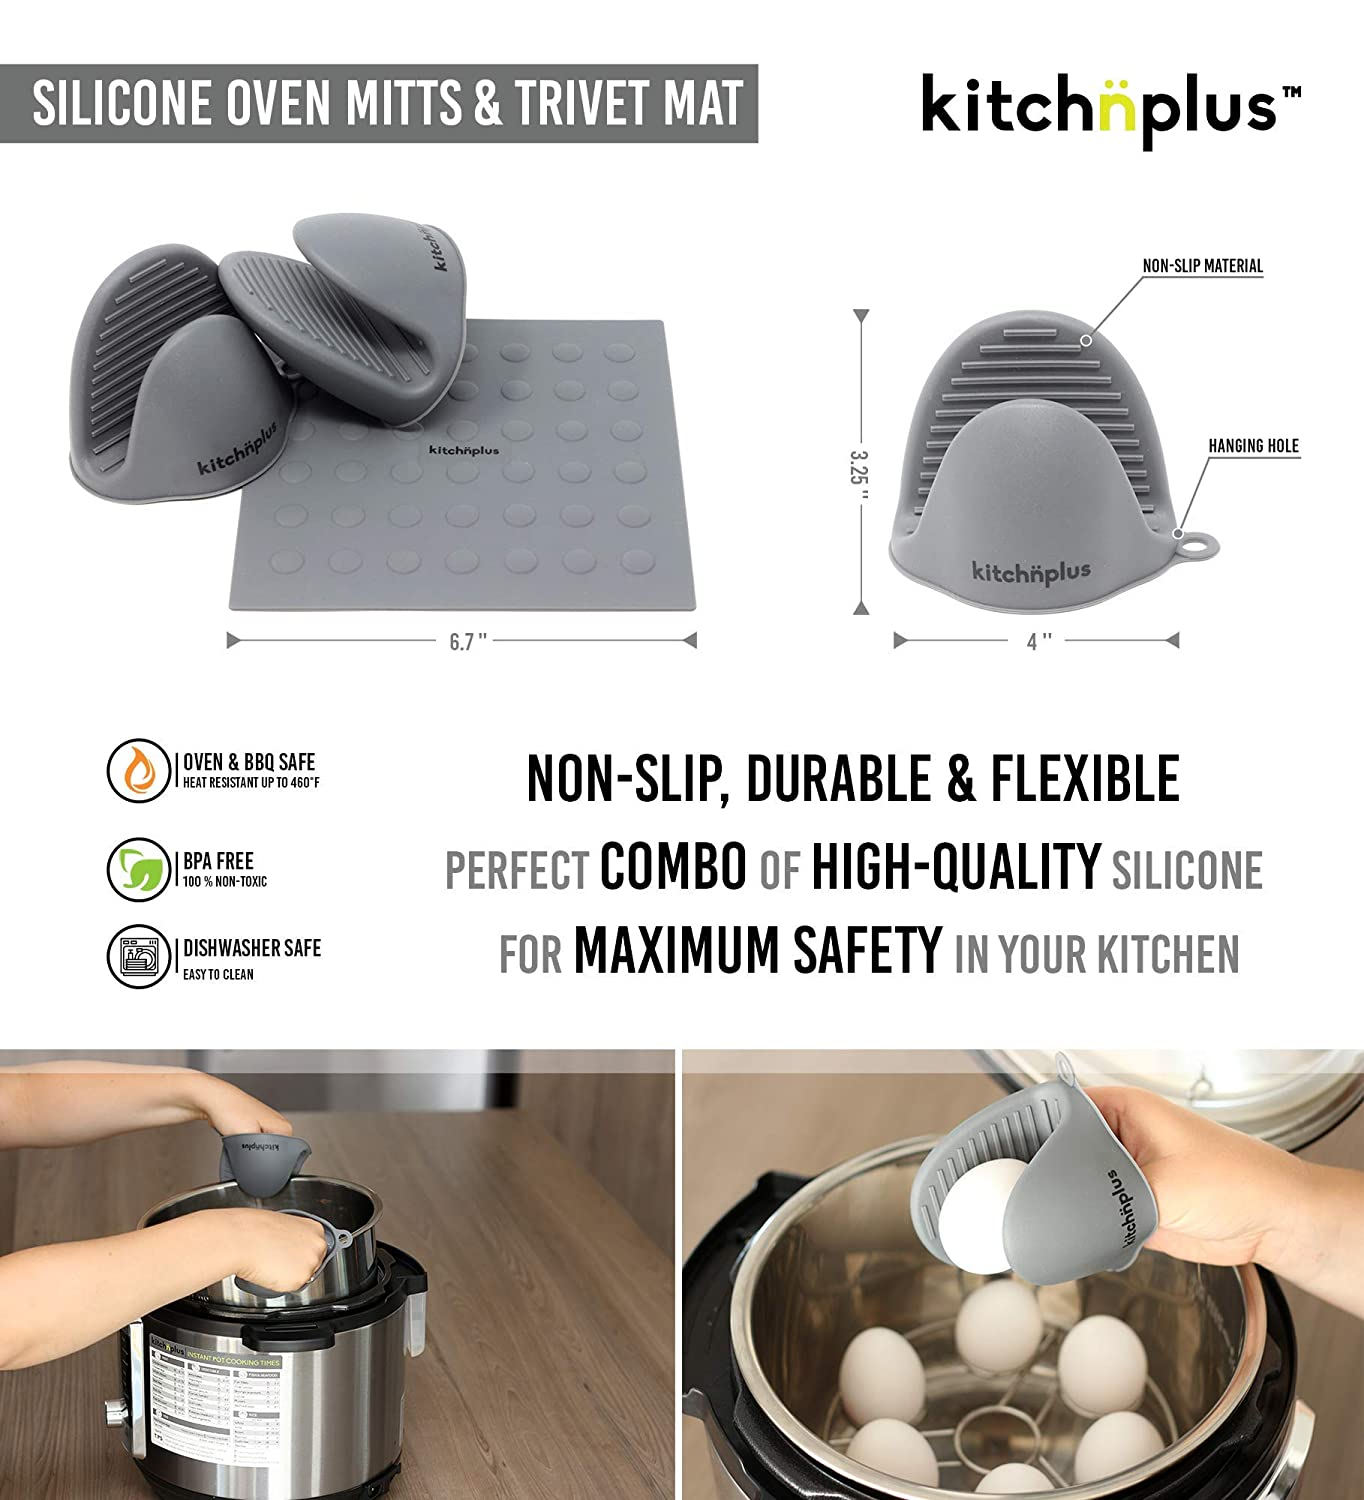 Cheat Sheet Magnet Oven Mitts//Mat Egg Bites Mold Egg Rack Instant Pot Accessories Set 10 pieces Springform Pan Fits Pressure Cooker 6 to 8 Qt Recipes Booklet by Kitchnplus Steamer Basket